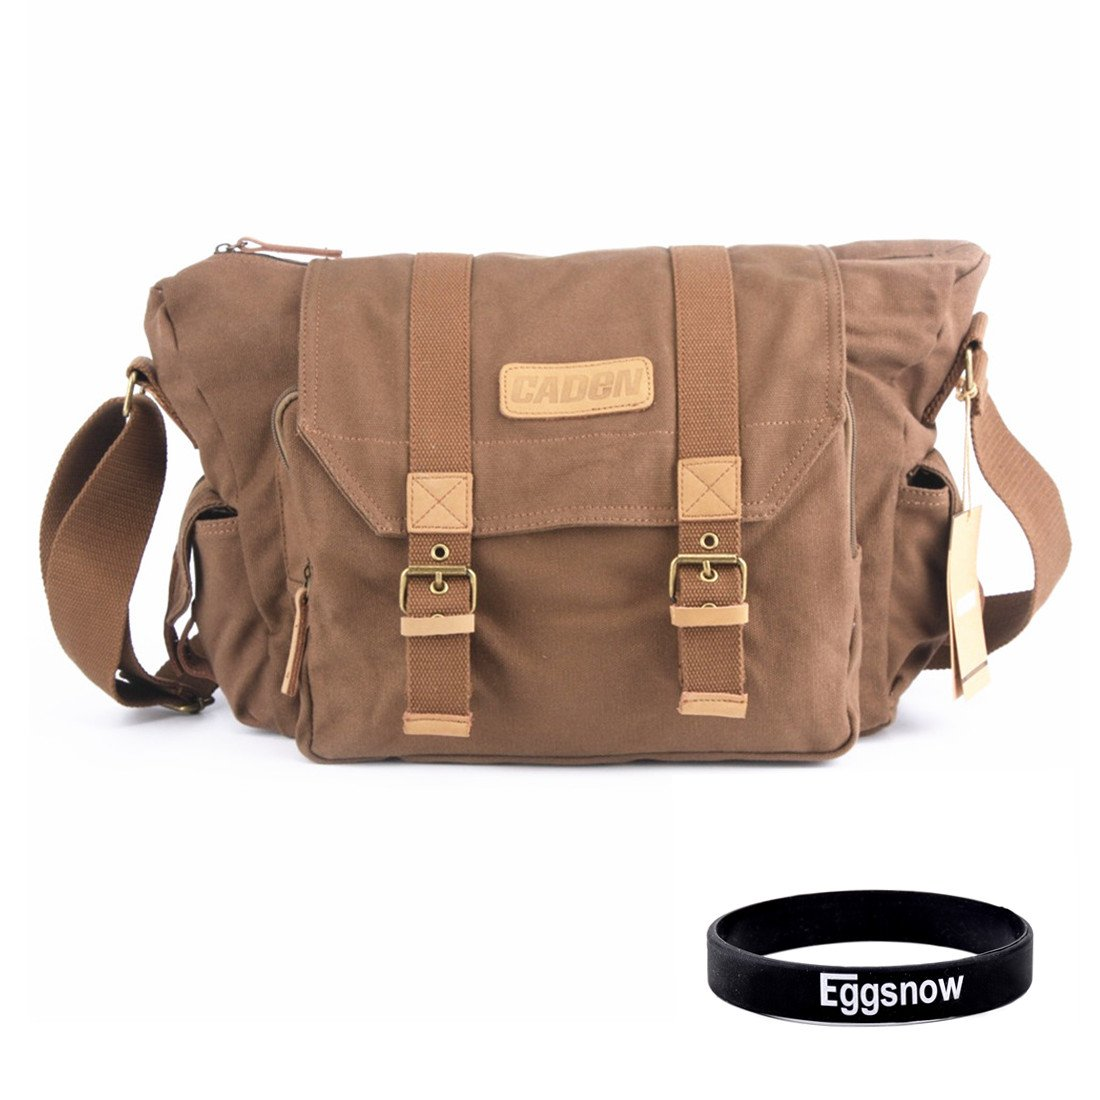 Eggsnow CADEN Camera Bag Waterproof Travel One Shoulderreview and more information